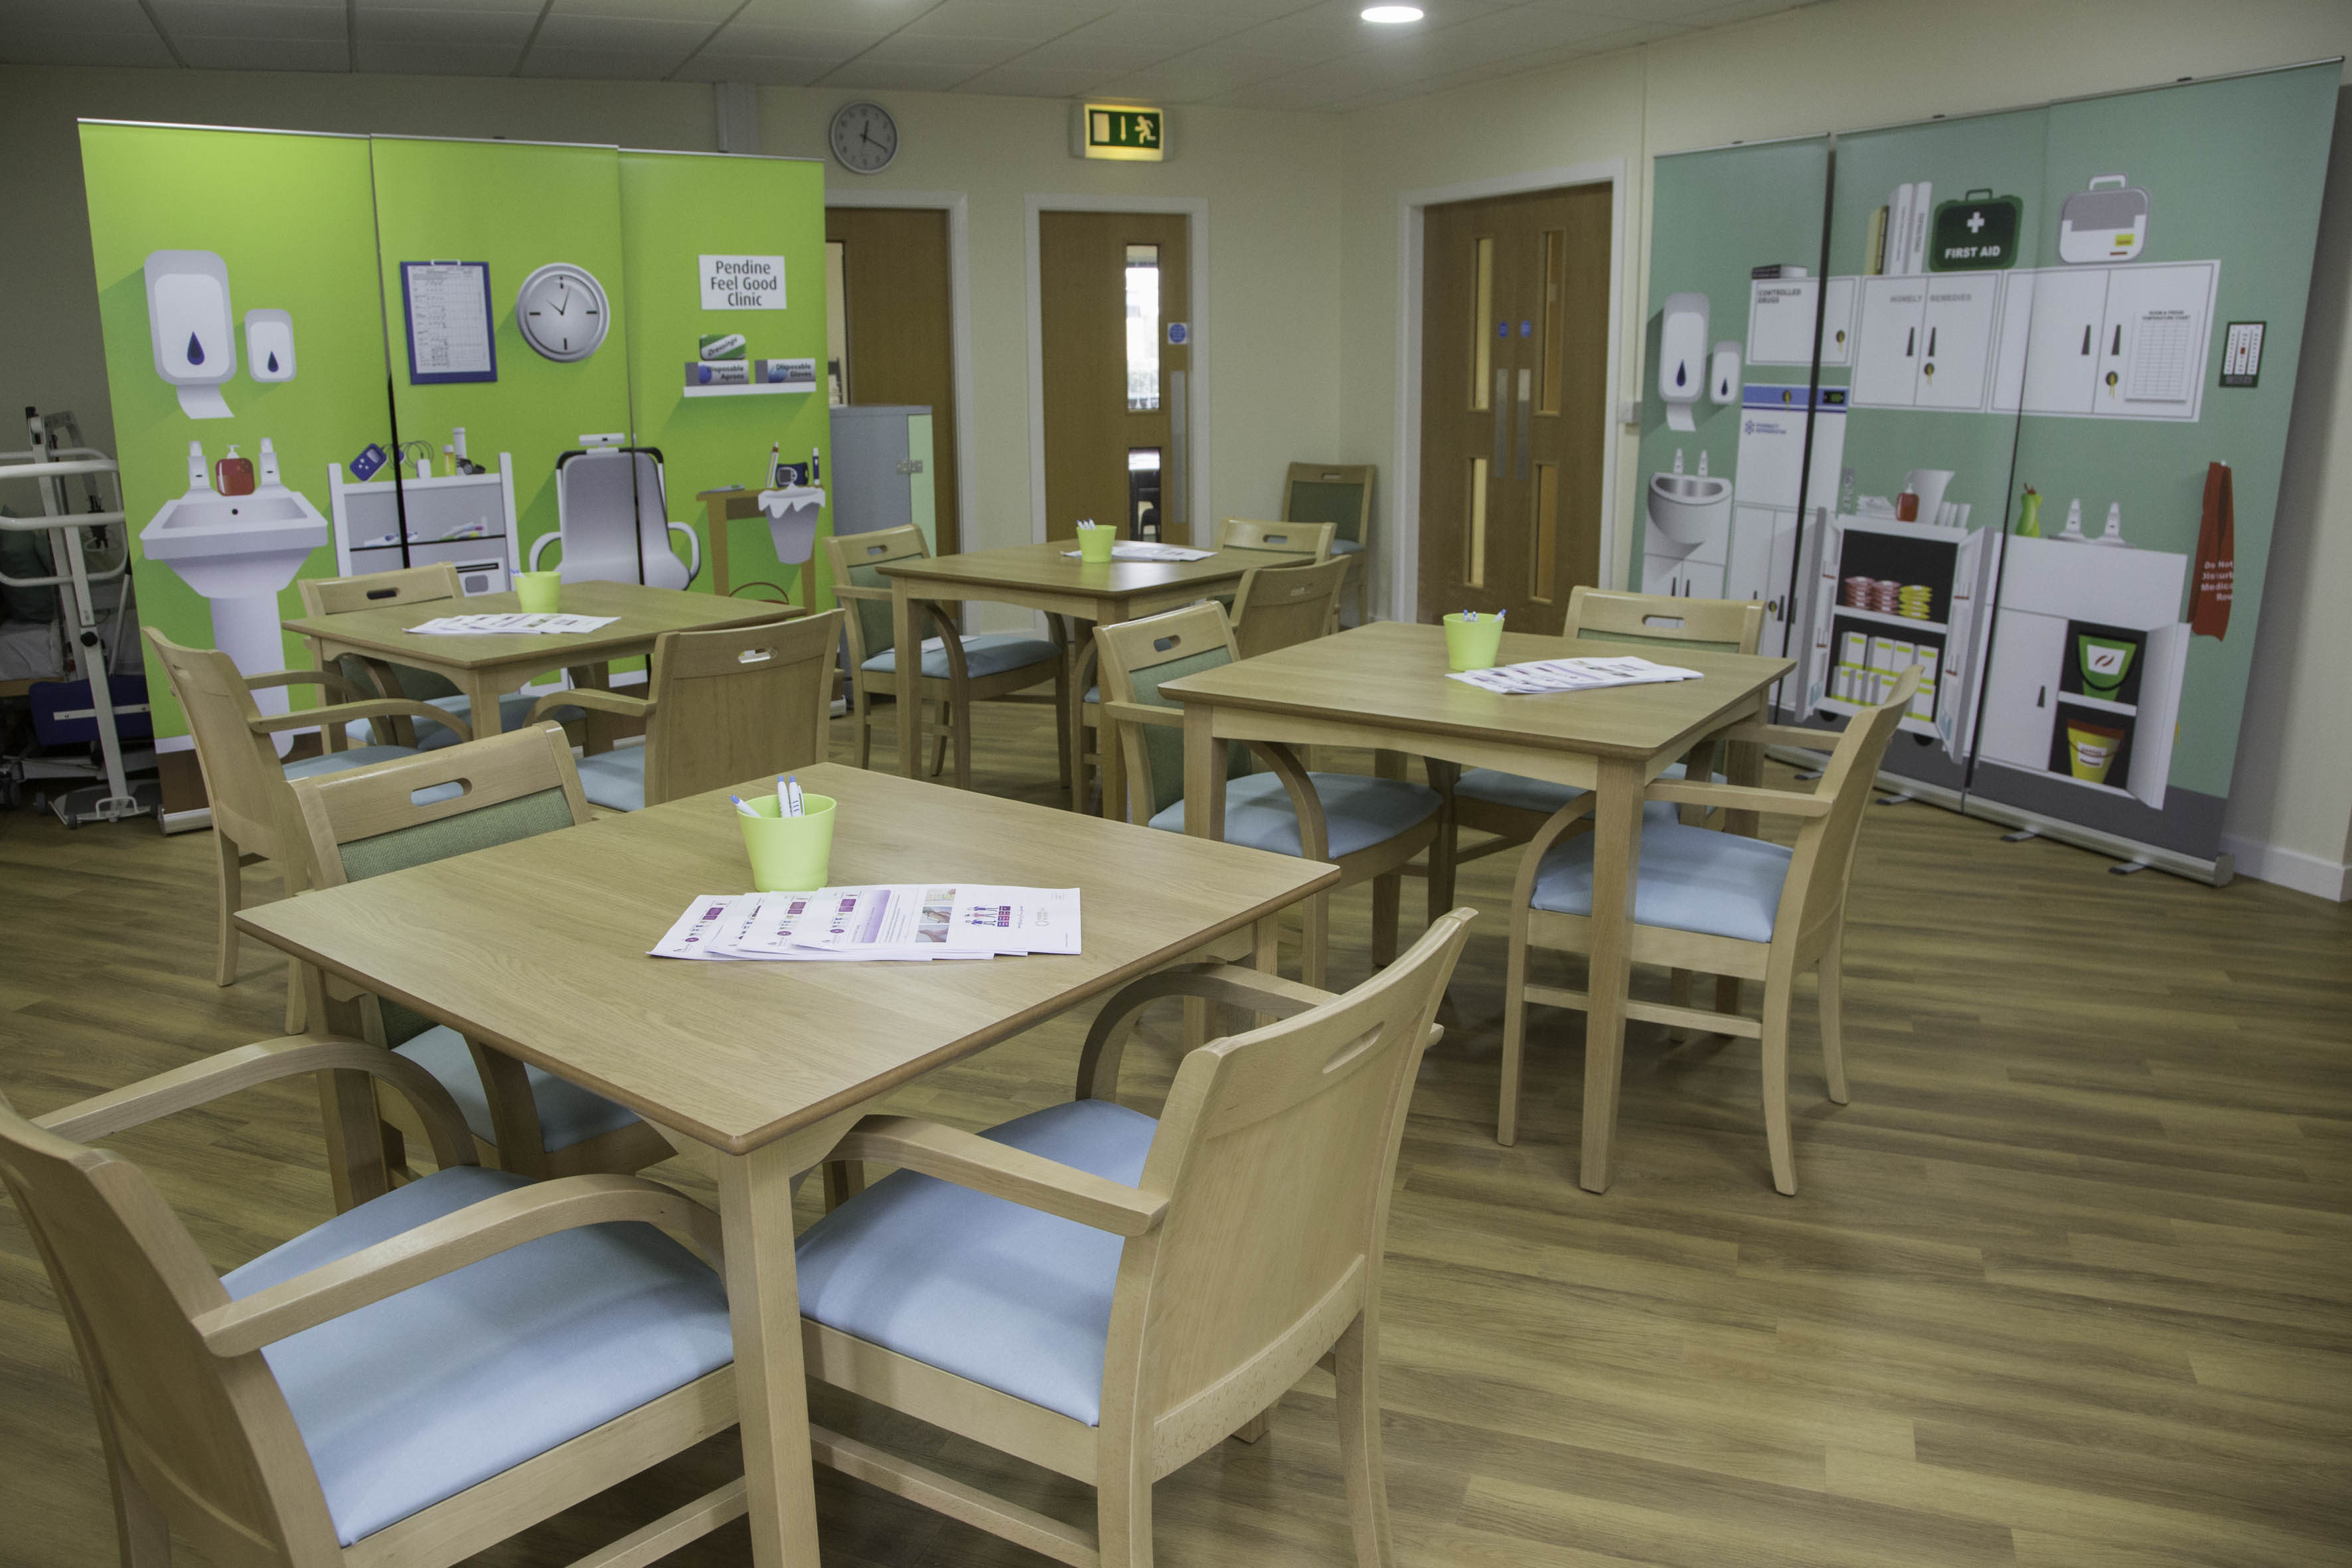 Pendine Park Care Home Wrexham North East Wales Dementia Care 24hr Nursing Care Residential Care For Older People Convalescence Respite Care At Home Physiotherapy Art Therapy